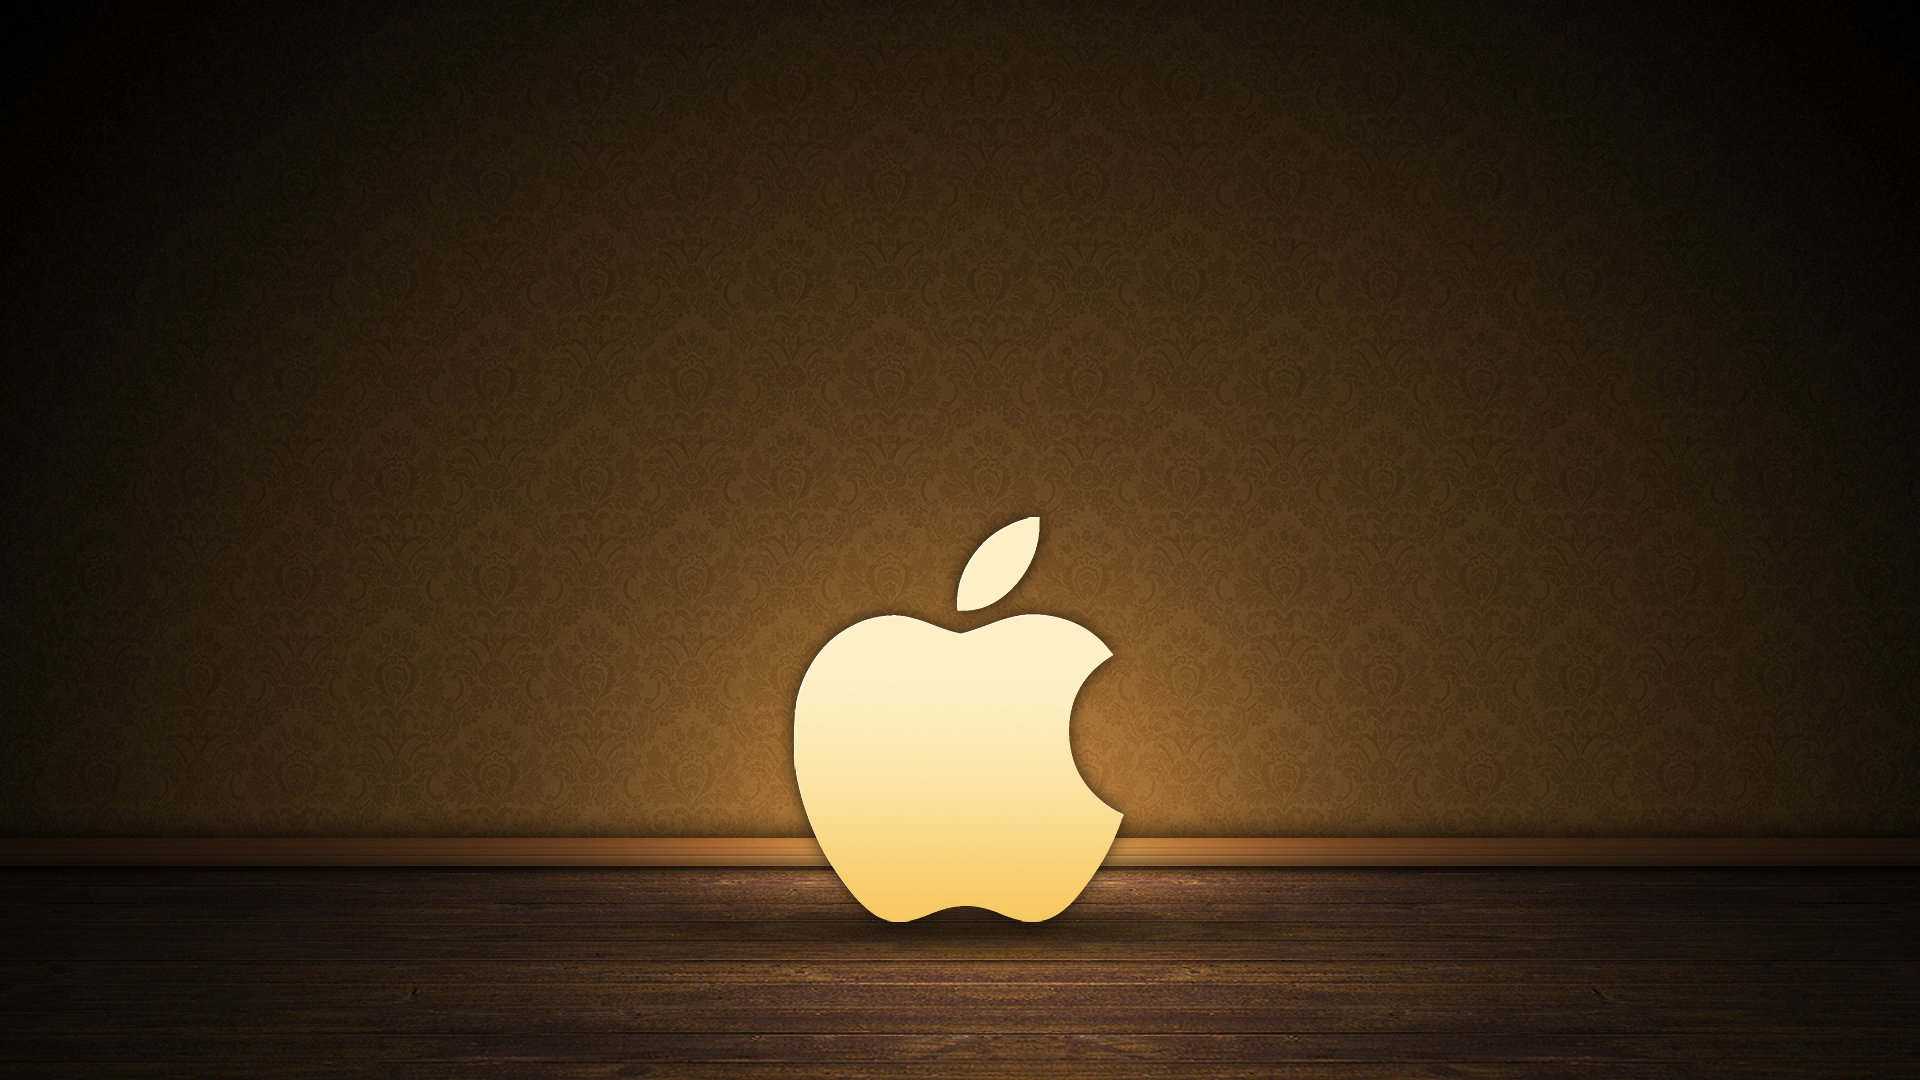 Brown Apple logo   High Definition Wallpapers   HD wallpapers 1920x1080